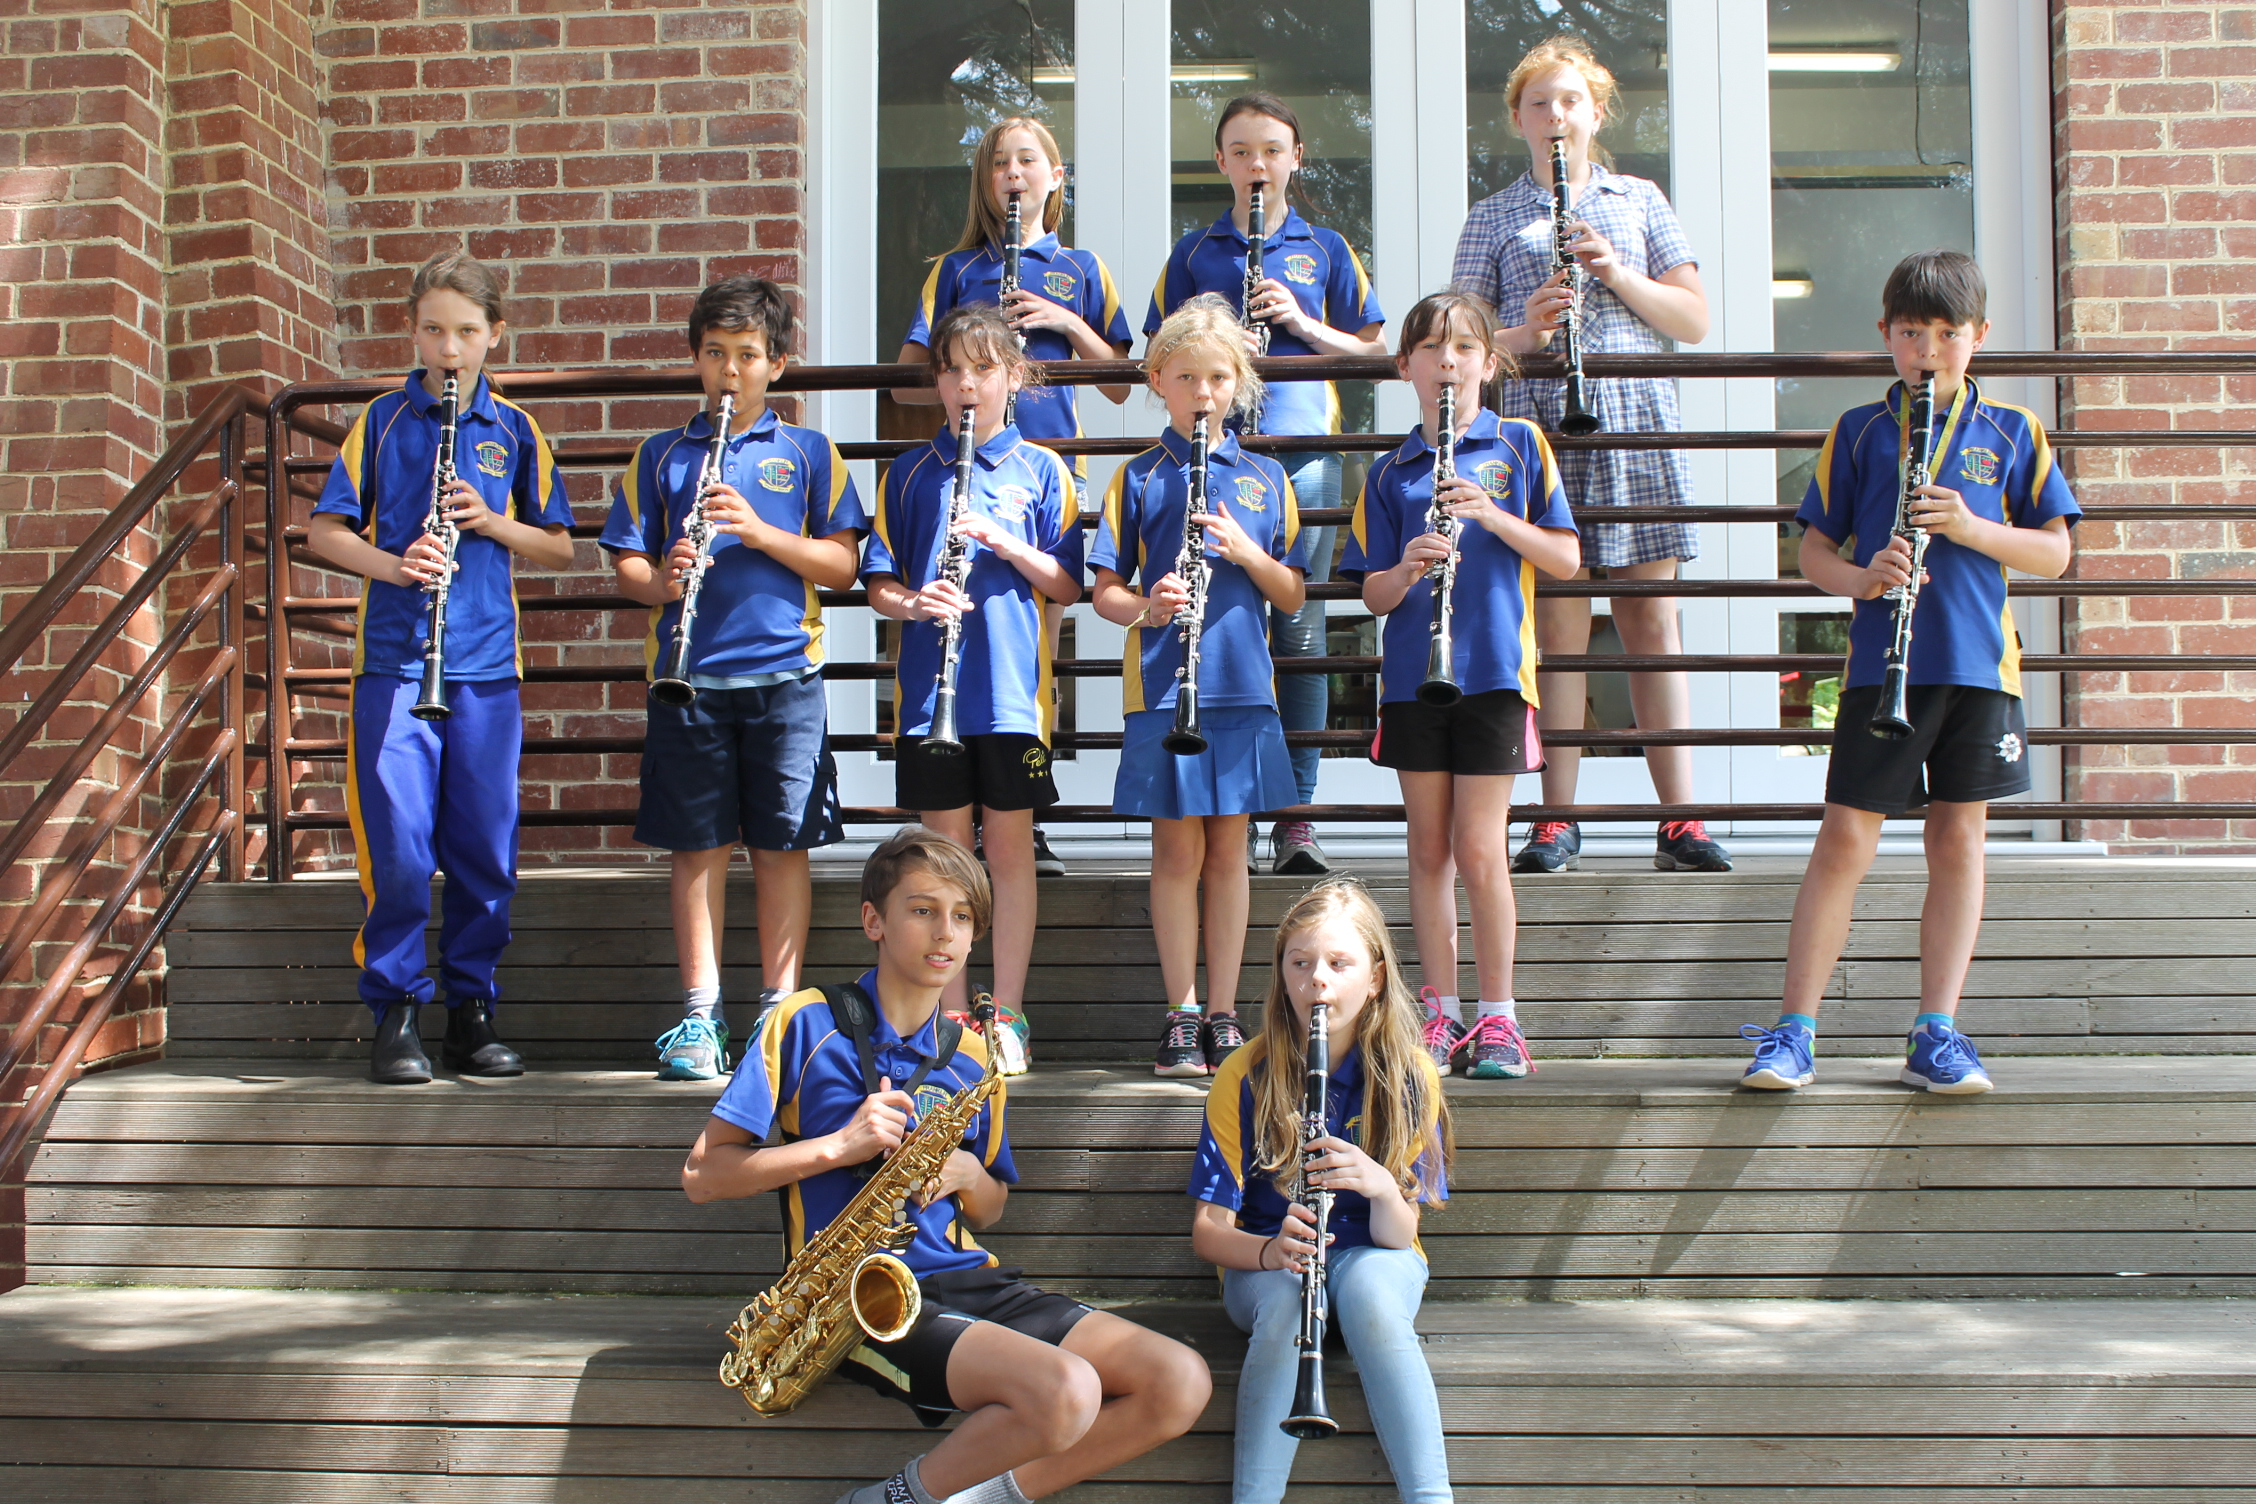 children playing instruments on stairs